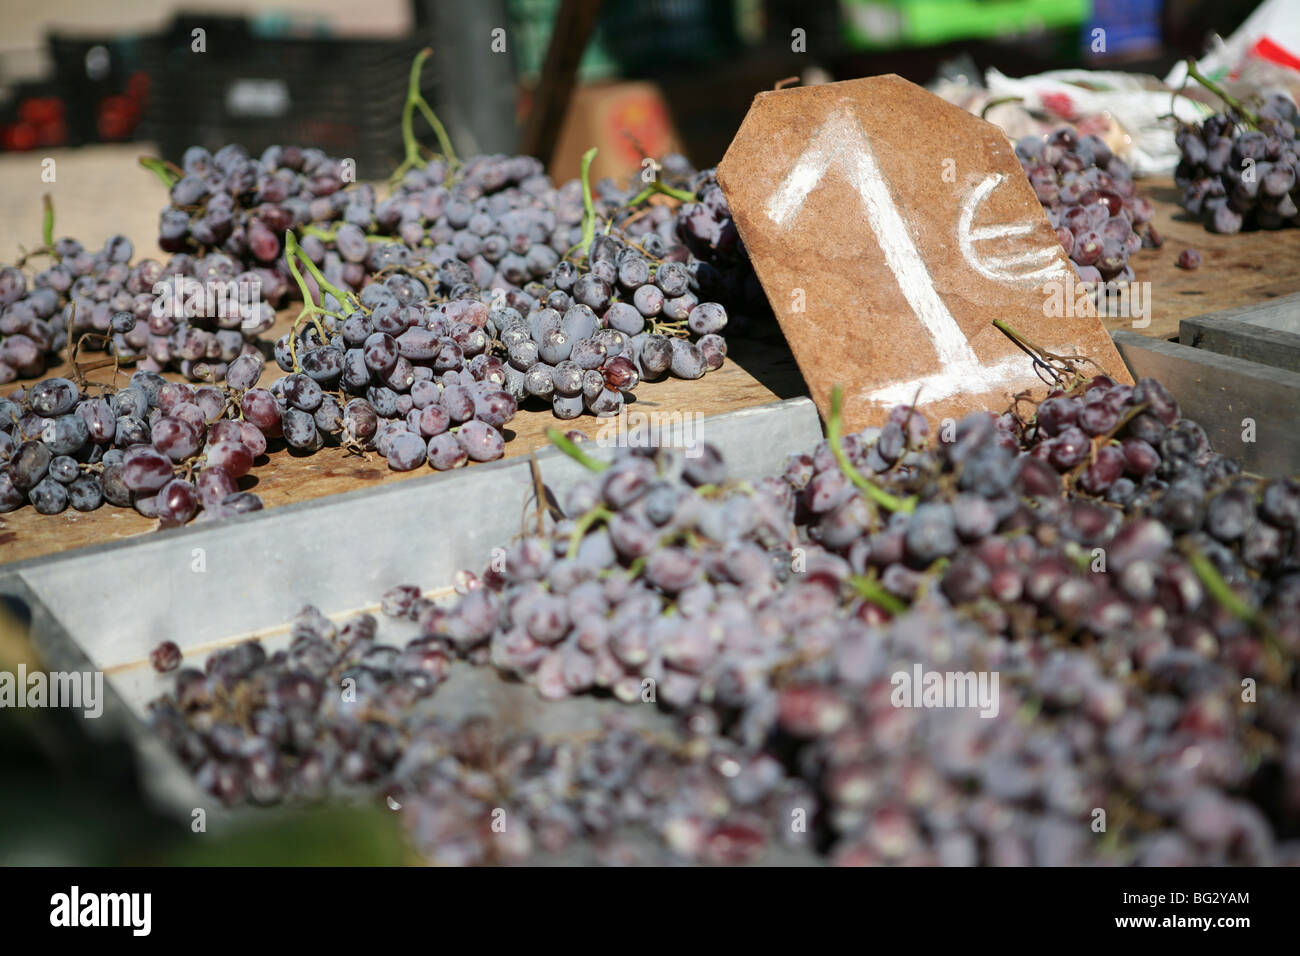 Fresh bunches of purple grapes for sale, 1 Euro / Vitis vinifera - Stock Image